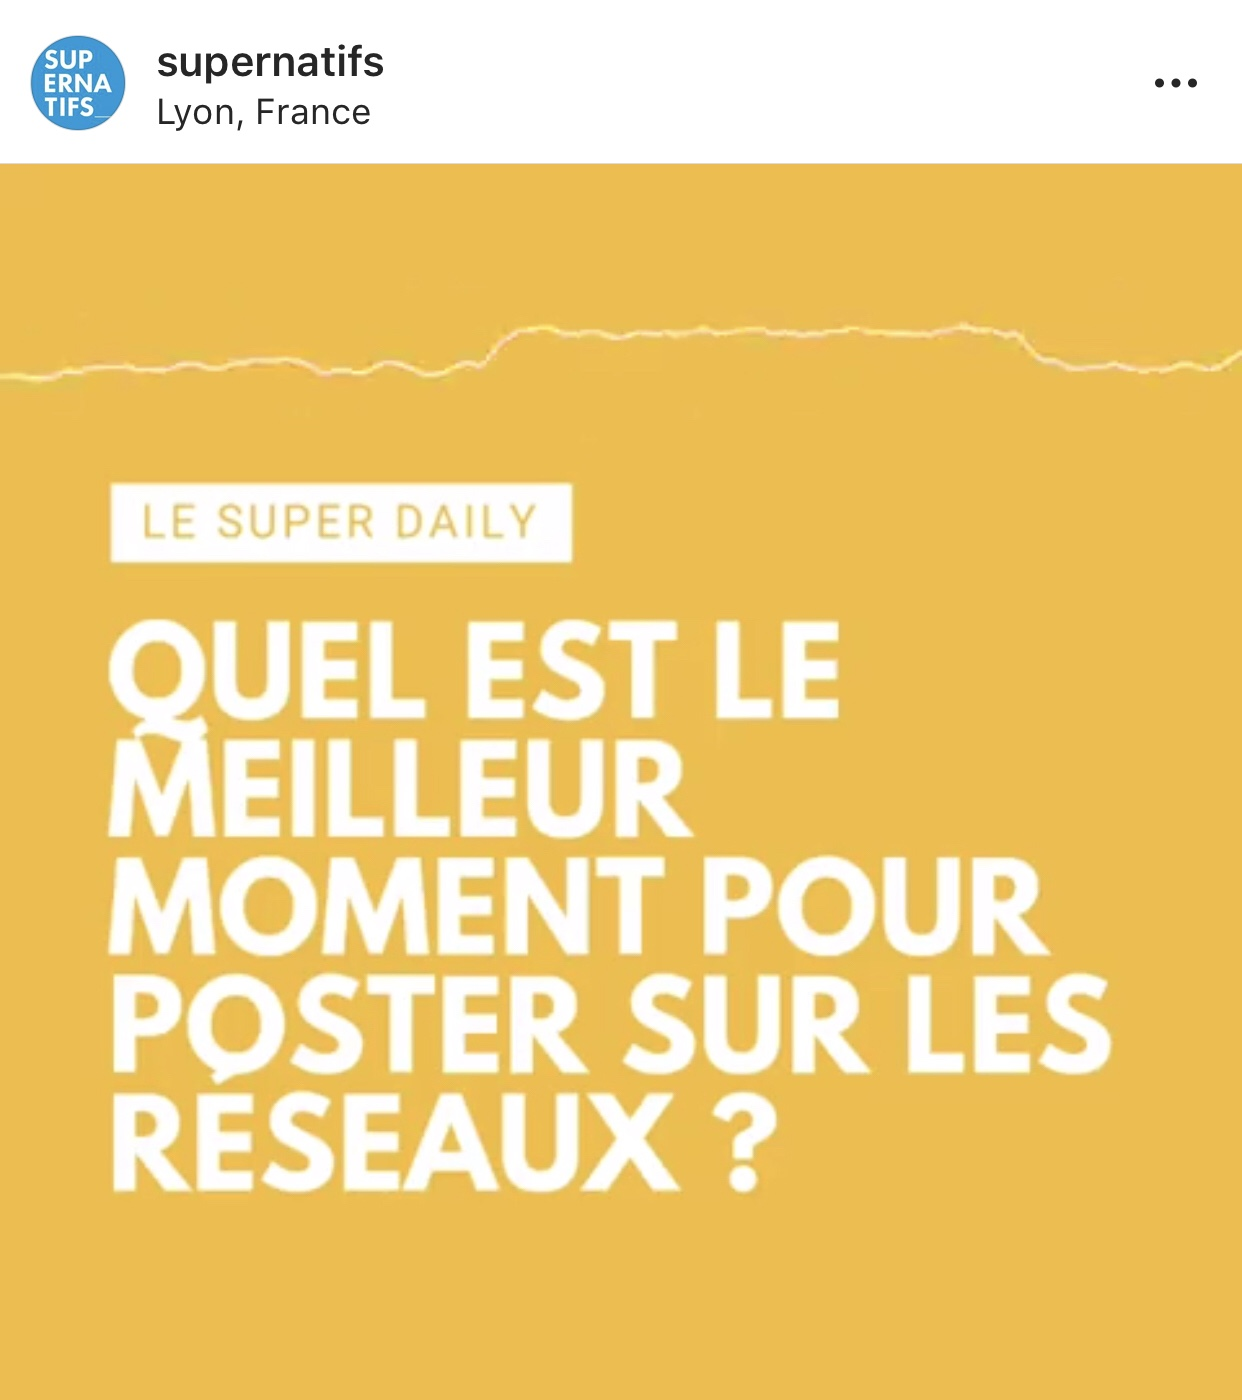 Le Super Daily Podcast Instagram 2